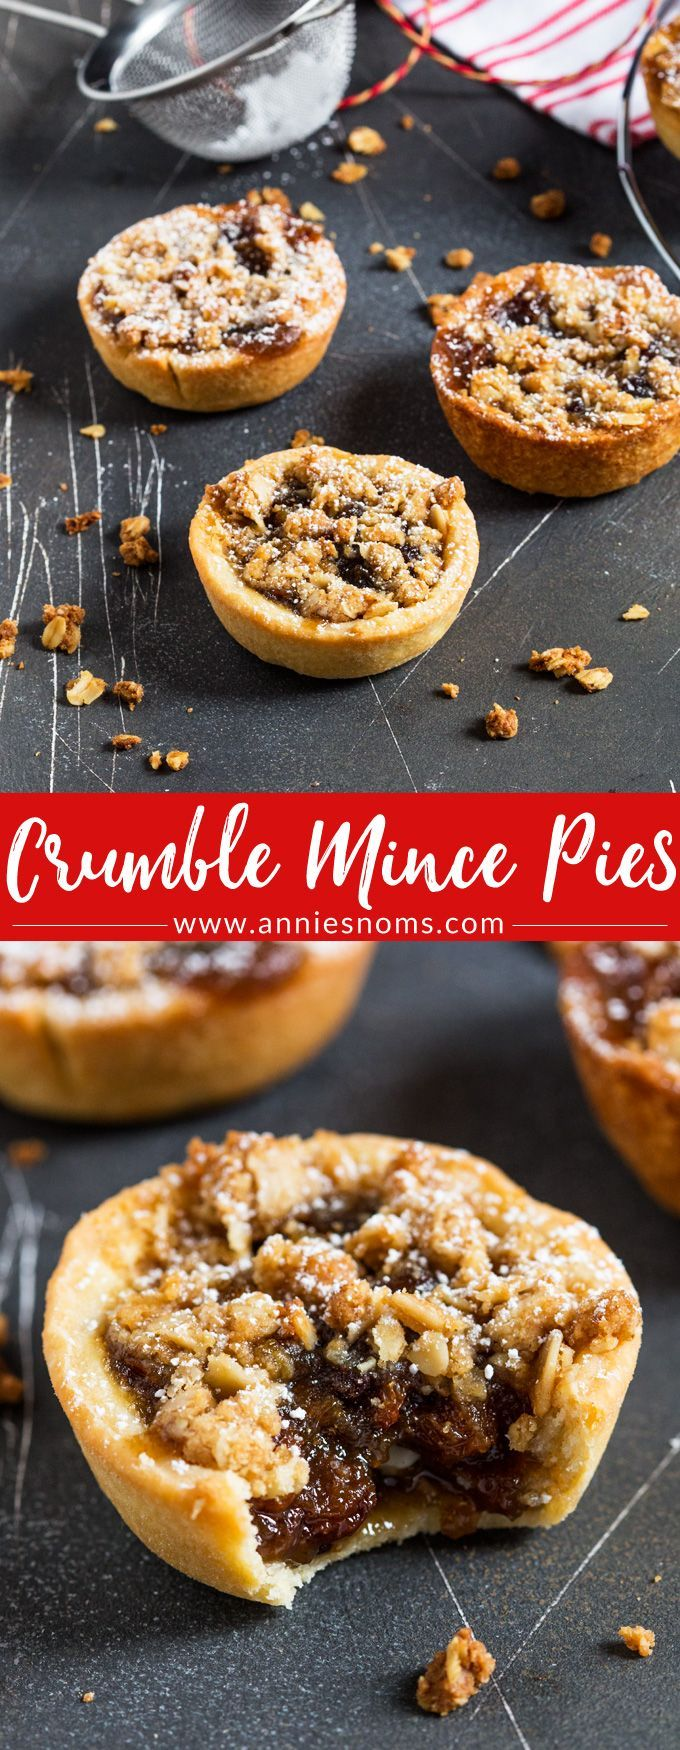 A twist on the classic Mince Pies, these pies have a crunchy, oat topping to contrast with the juicy, sweet filling and crisp homemade pastry outer shell. #christmas #mincepies